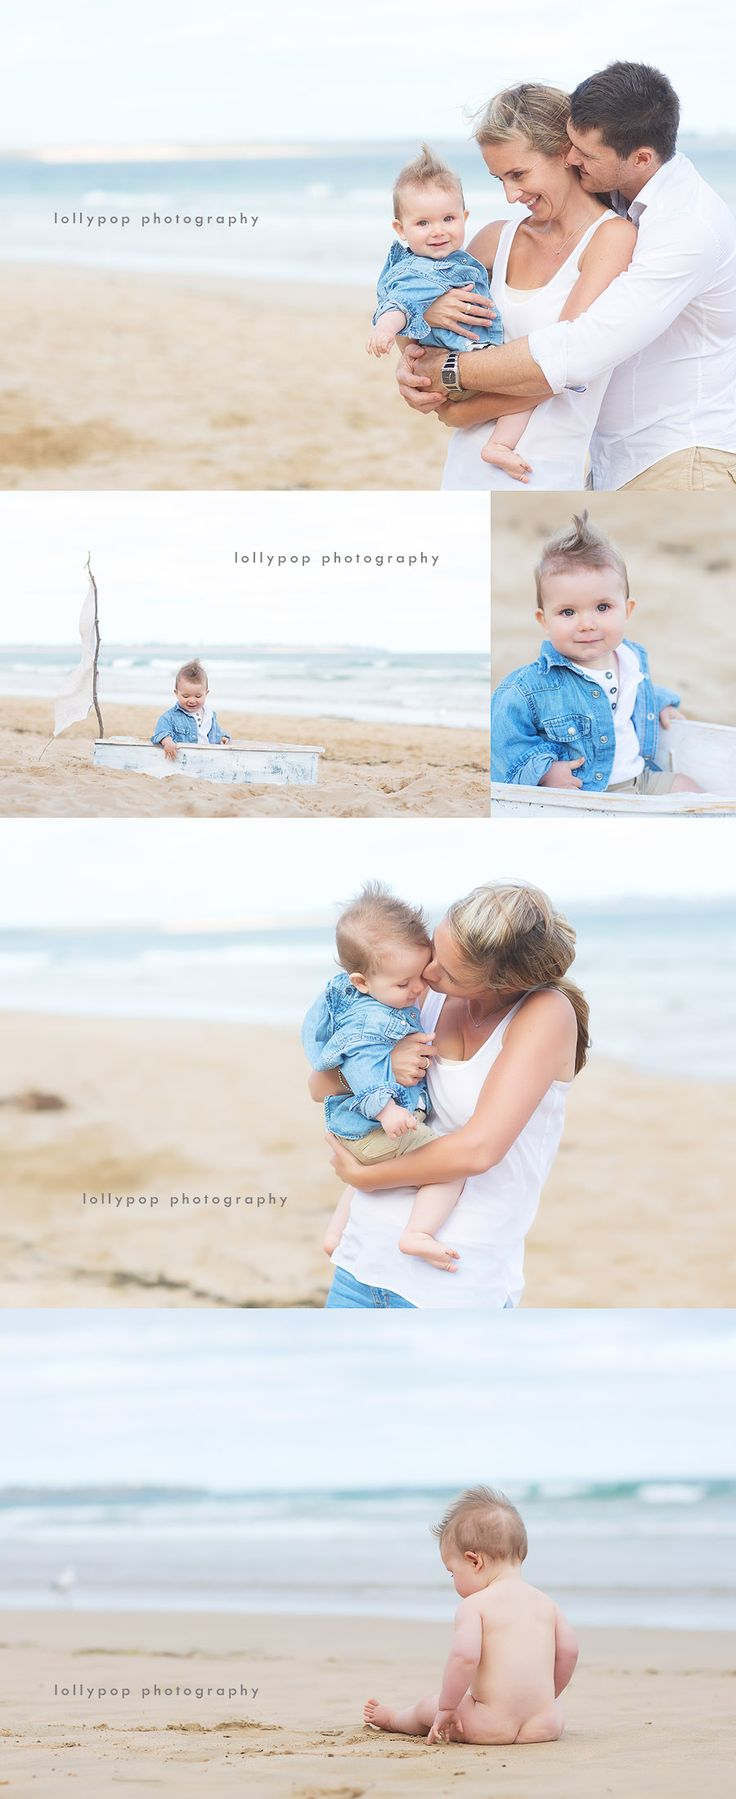 family and children's beach photography by lollypop photography